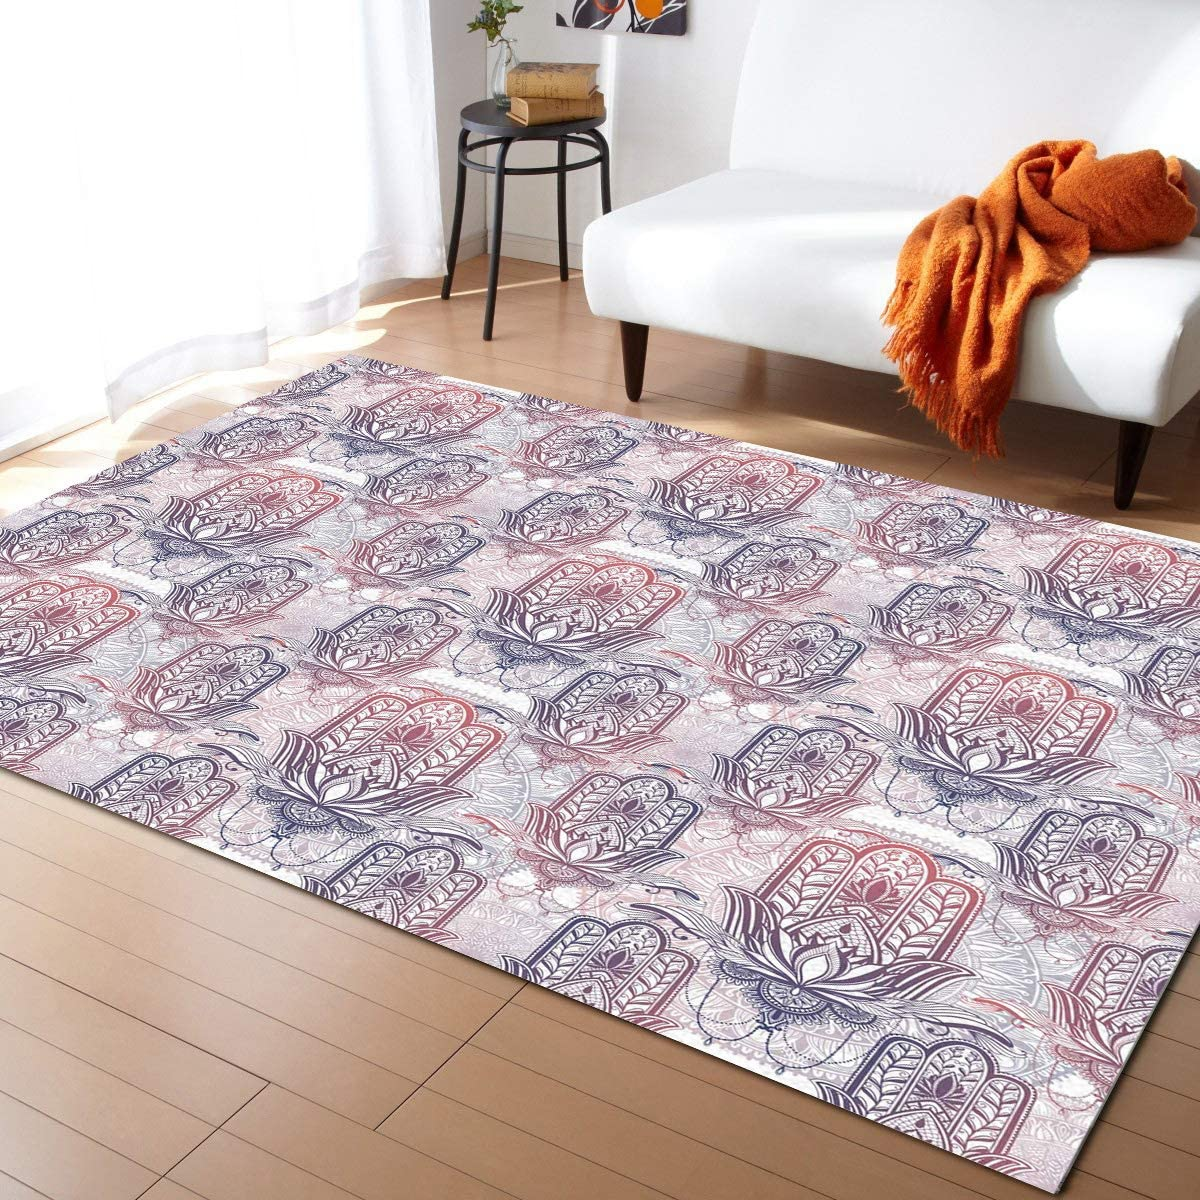 Caffling Modern Area Rugs for Living Feet Room Man Soldering Chicago Mall Colorful 3x5